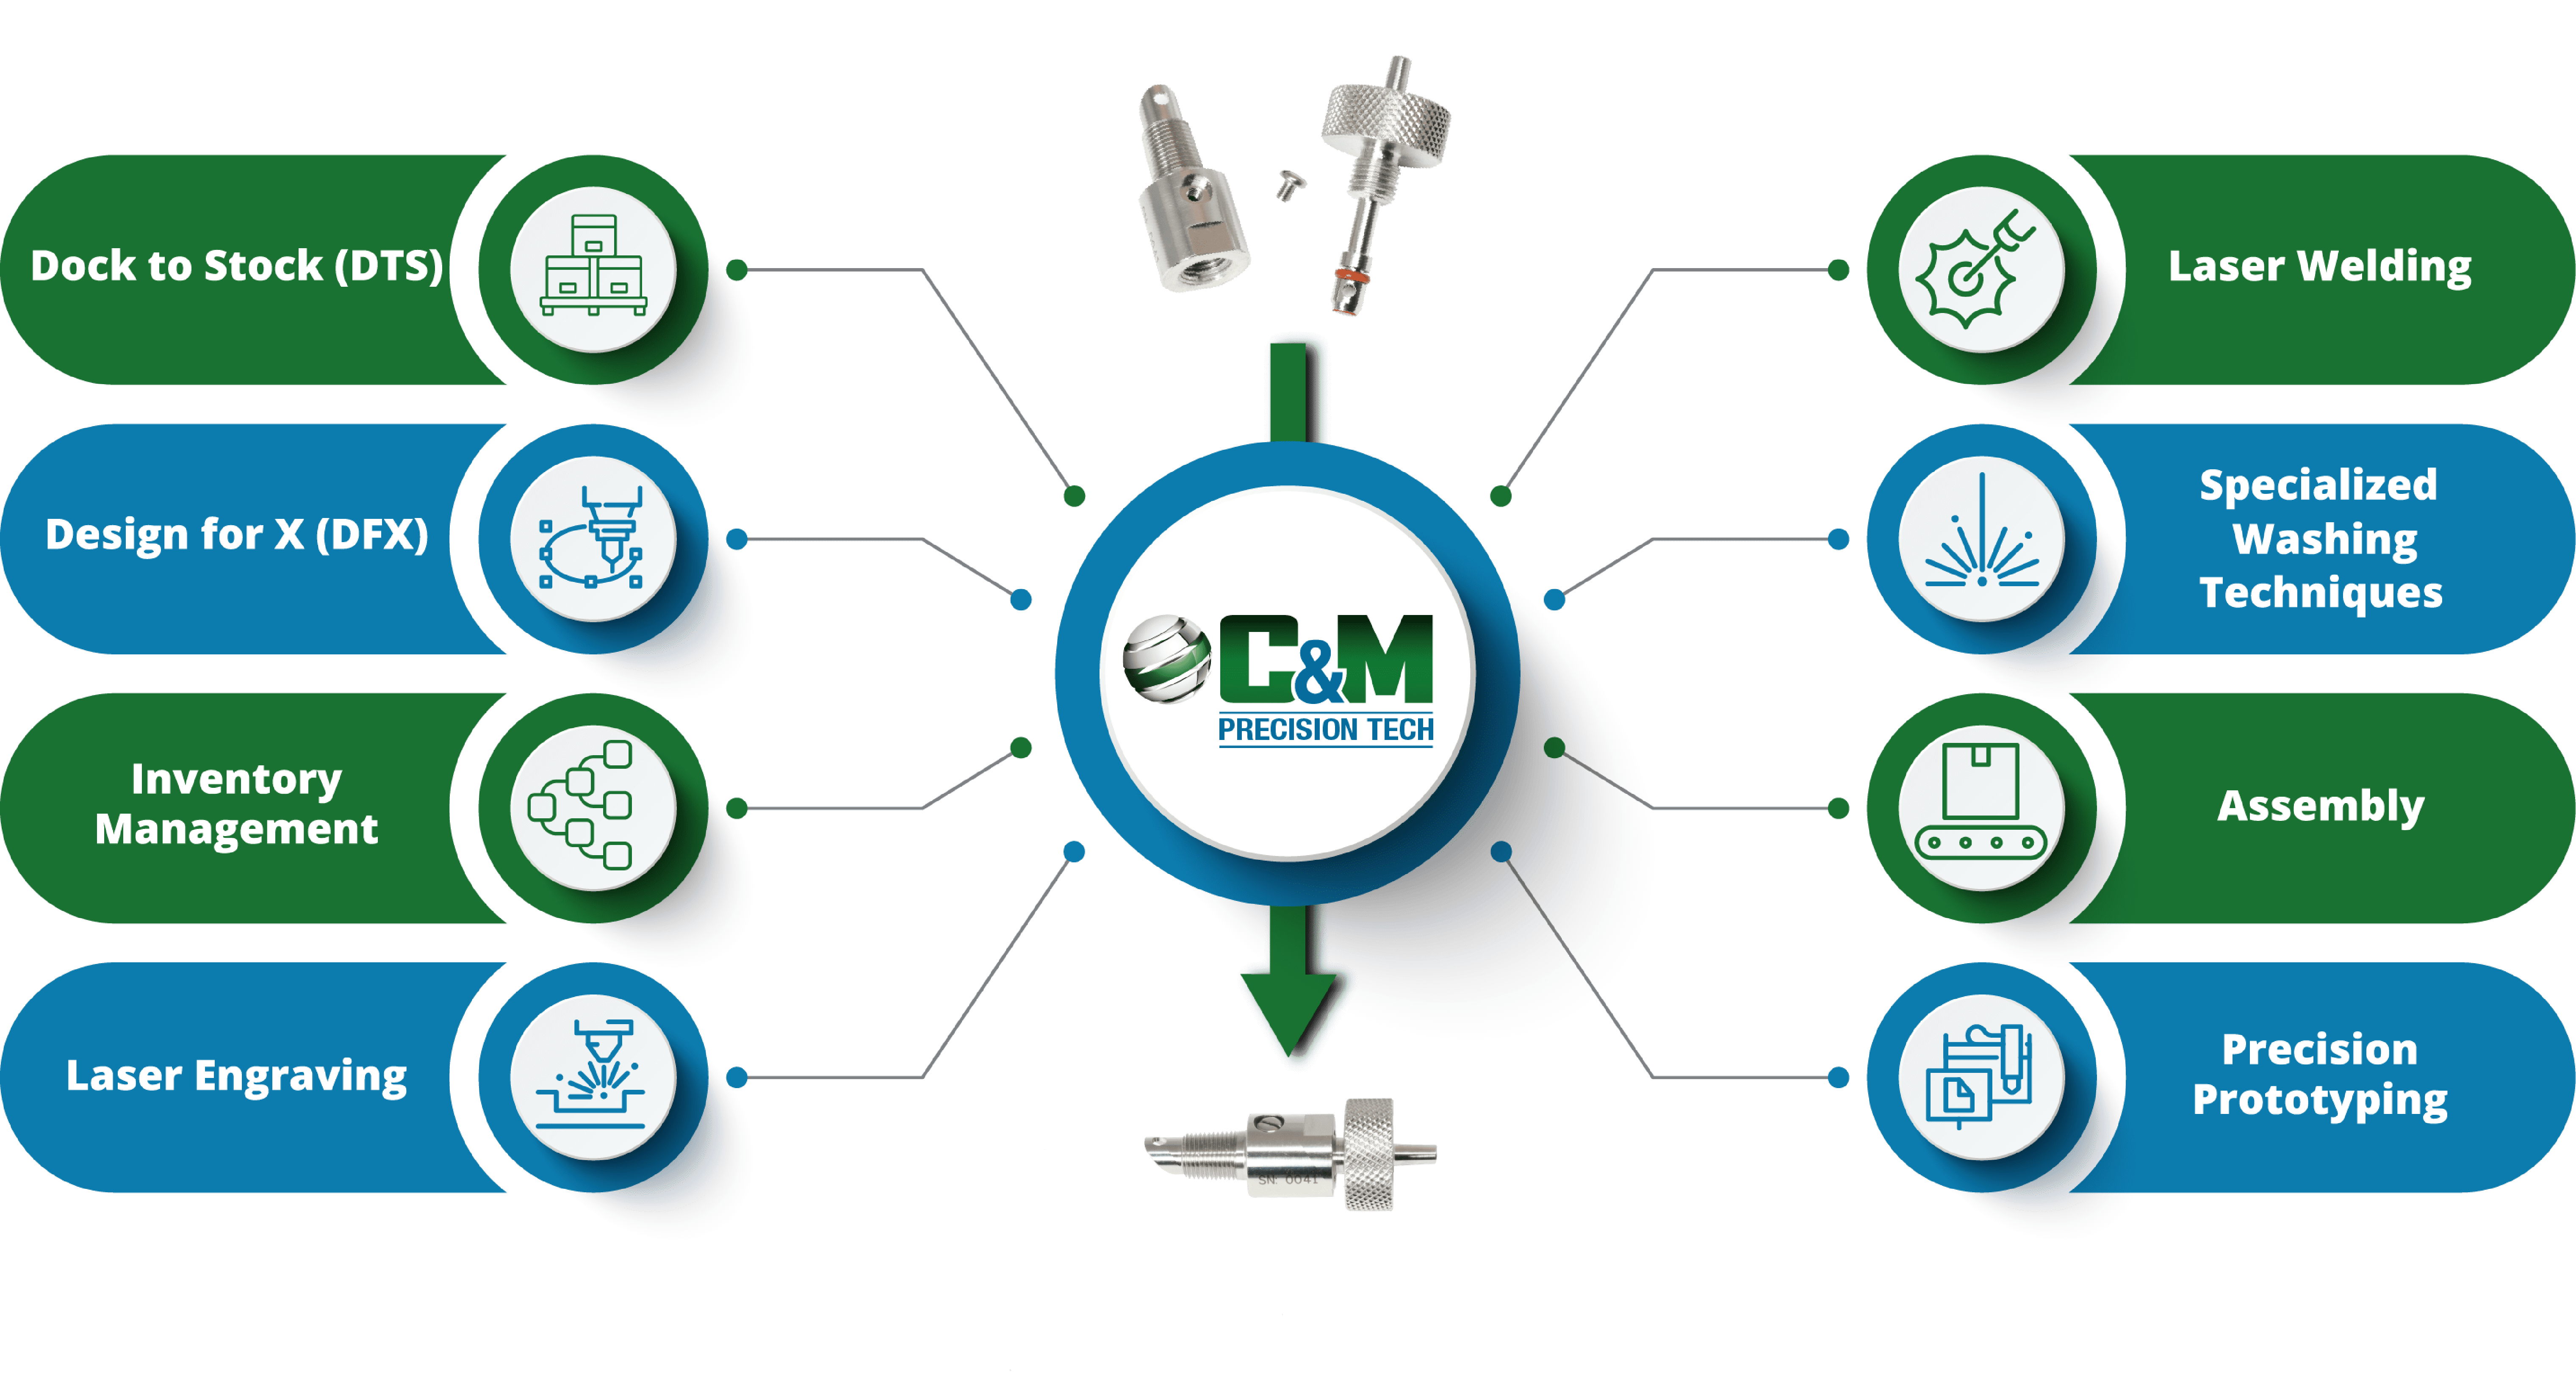 C&M Value Added Services